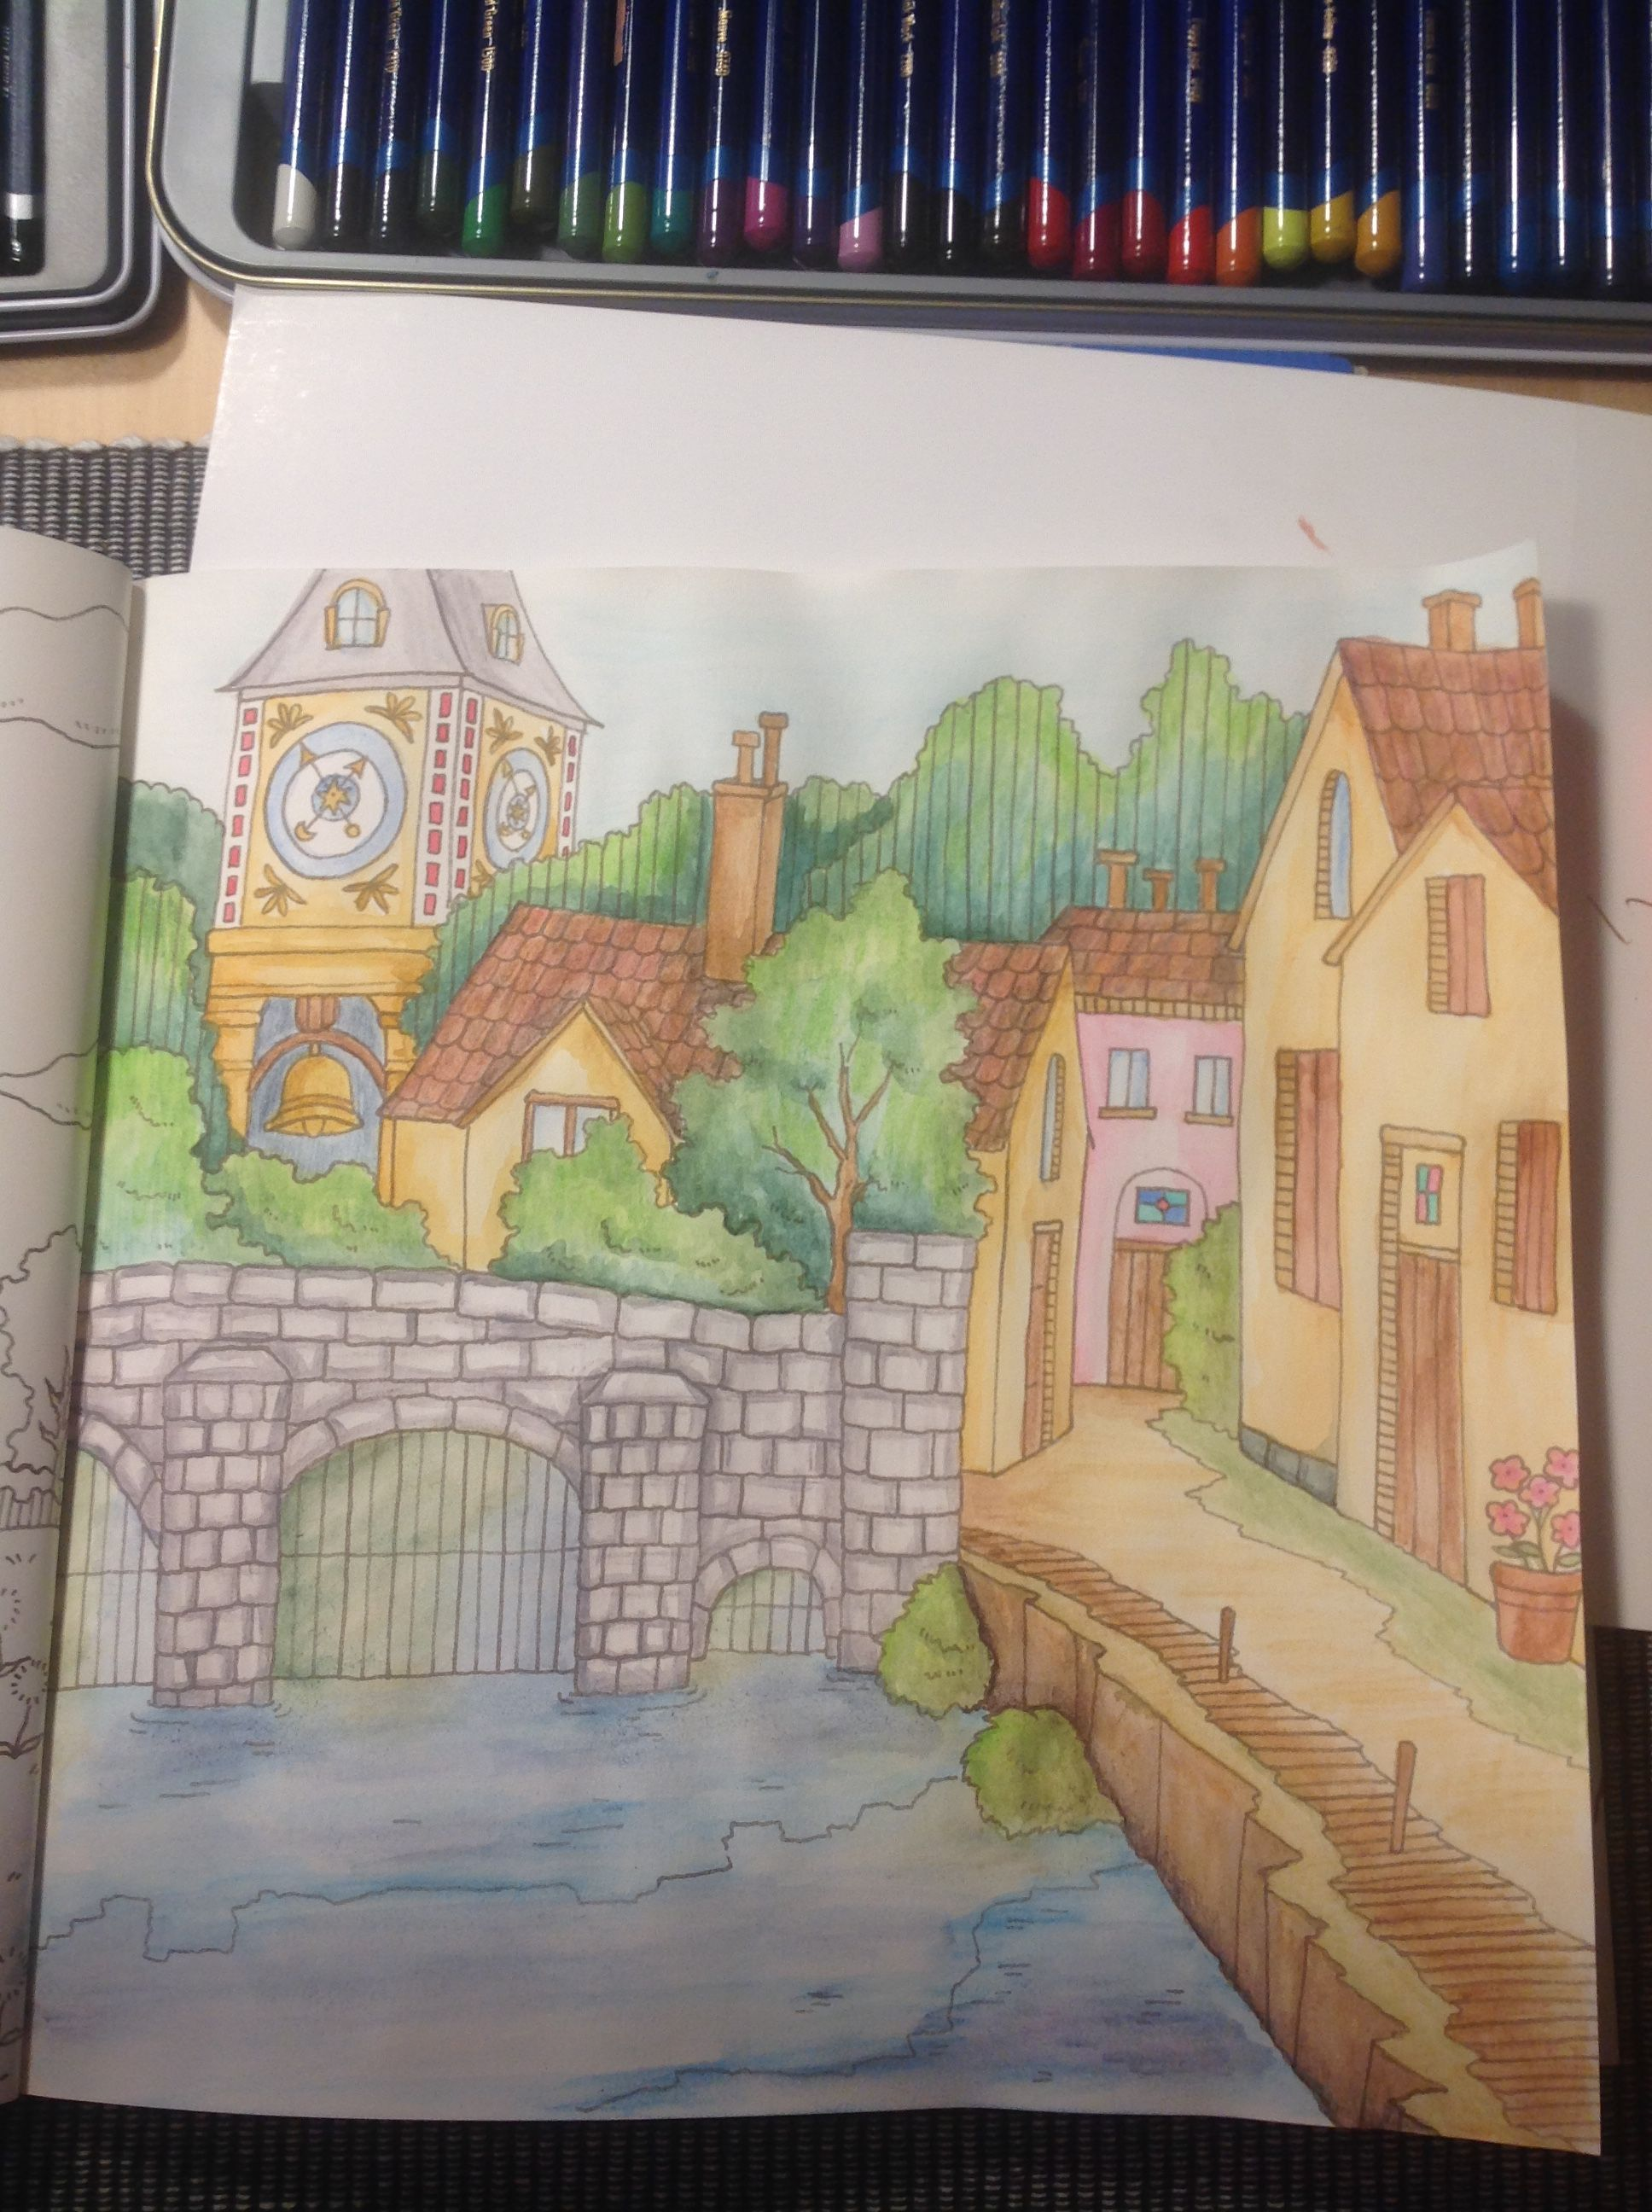 Watercolor pencils for adult coloring book - Romantic Country Color By Me Seija With Derwent Inktense And Watercolor Pencils Adult Coloringcoloring Bookscolouringwatercolor